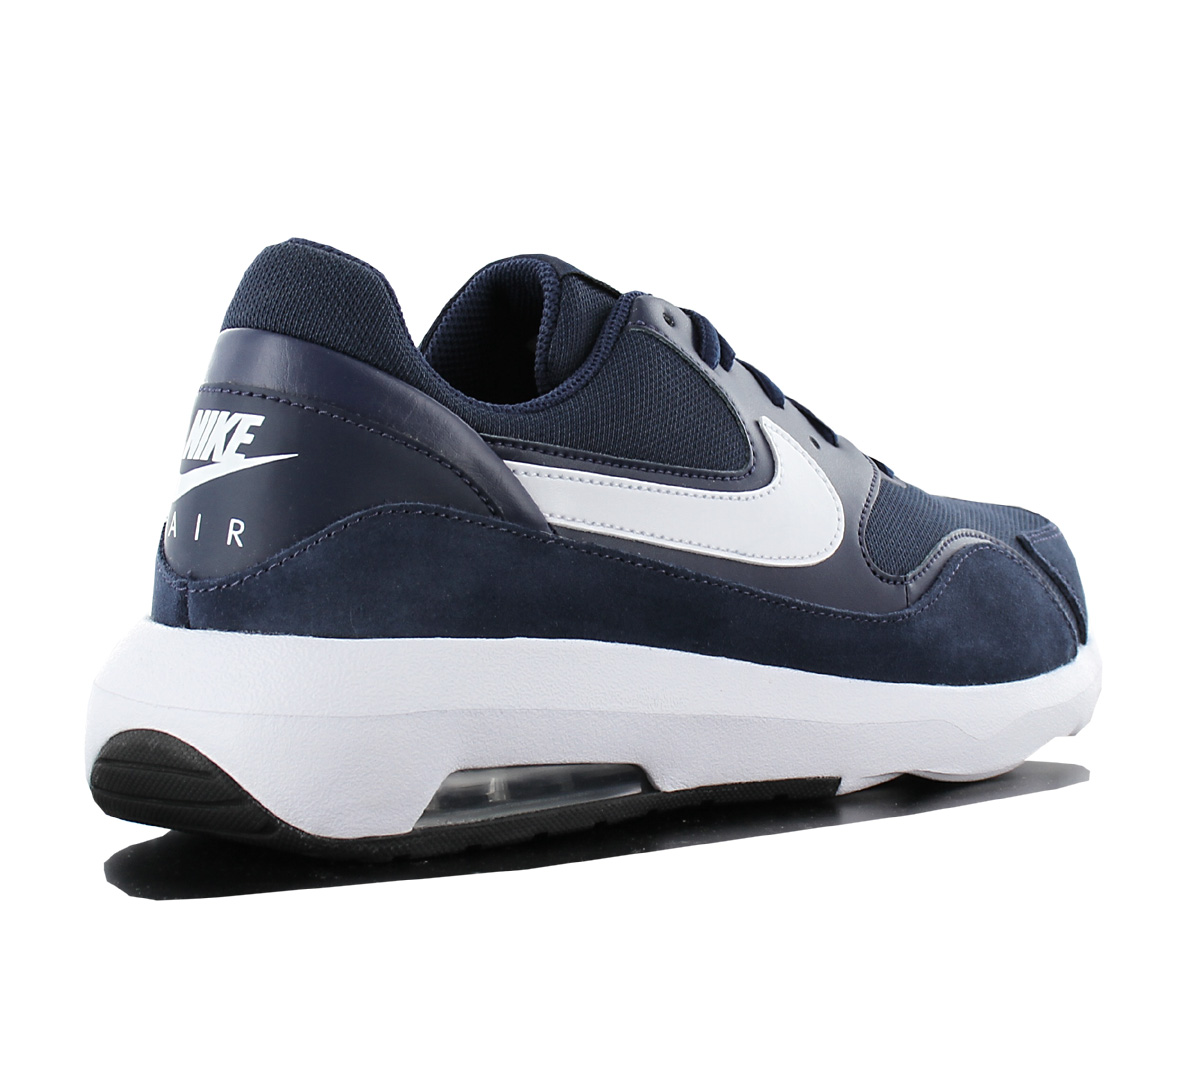 Details about Nike Air Max Nostalgic Men's Sneaker Shoes Navy Blue Classic 916781 400 New